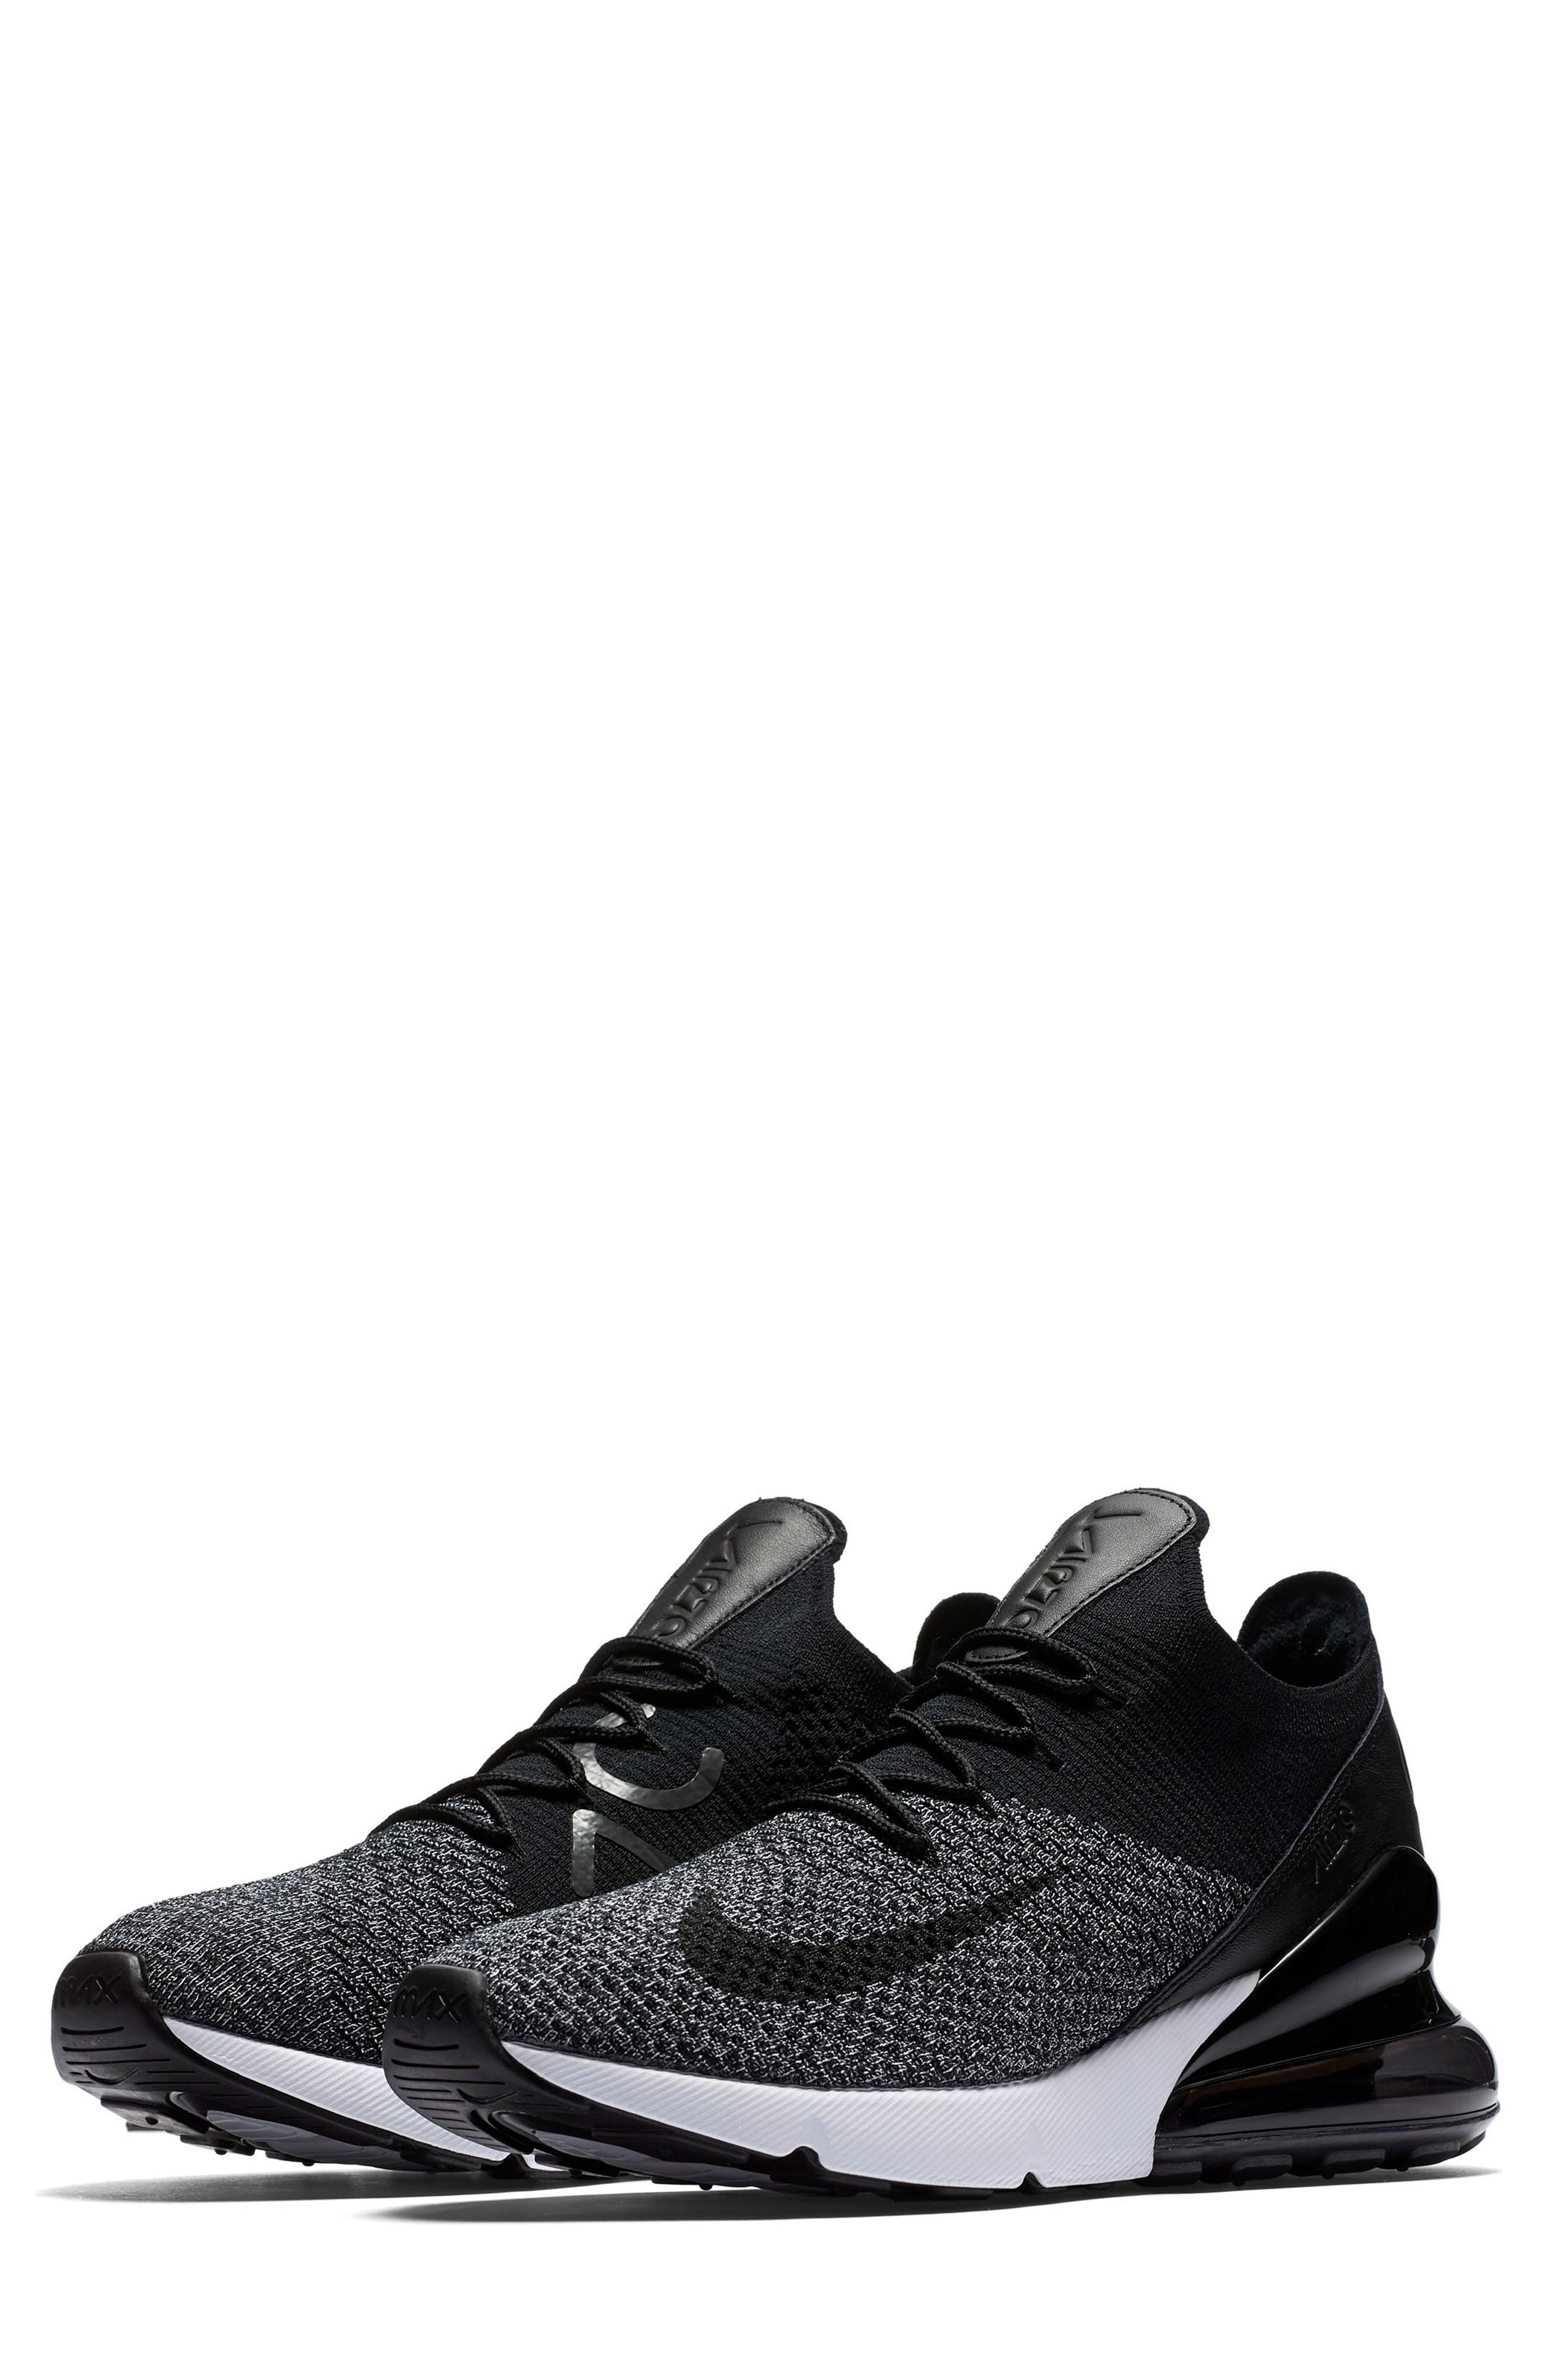 Air Max 270 Flyknit Sneaker,                         Main,                         color, 001